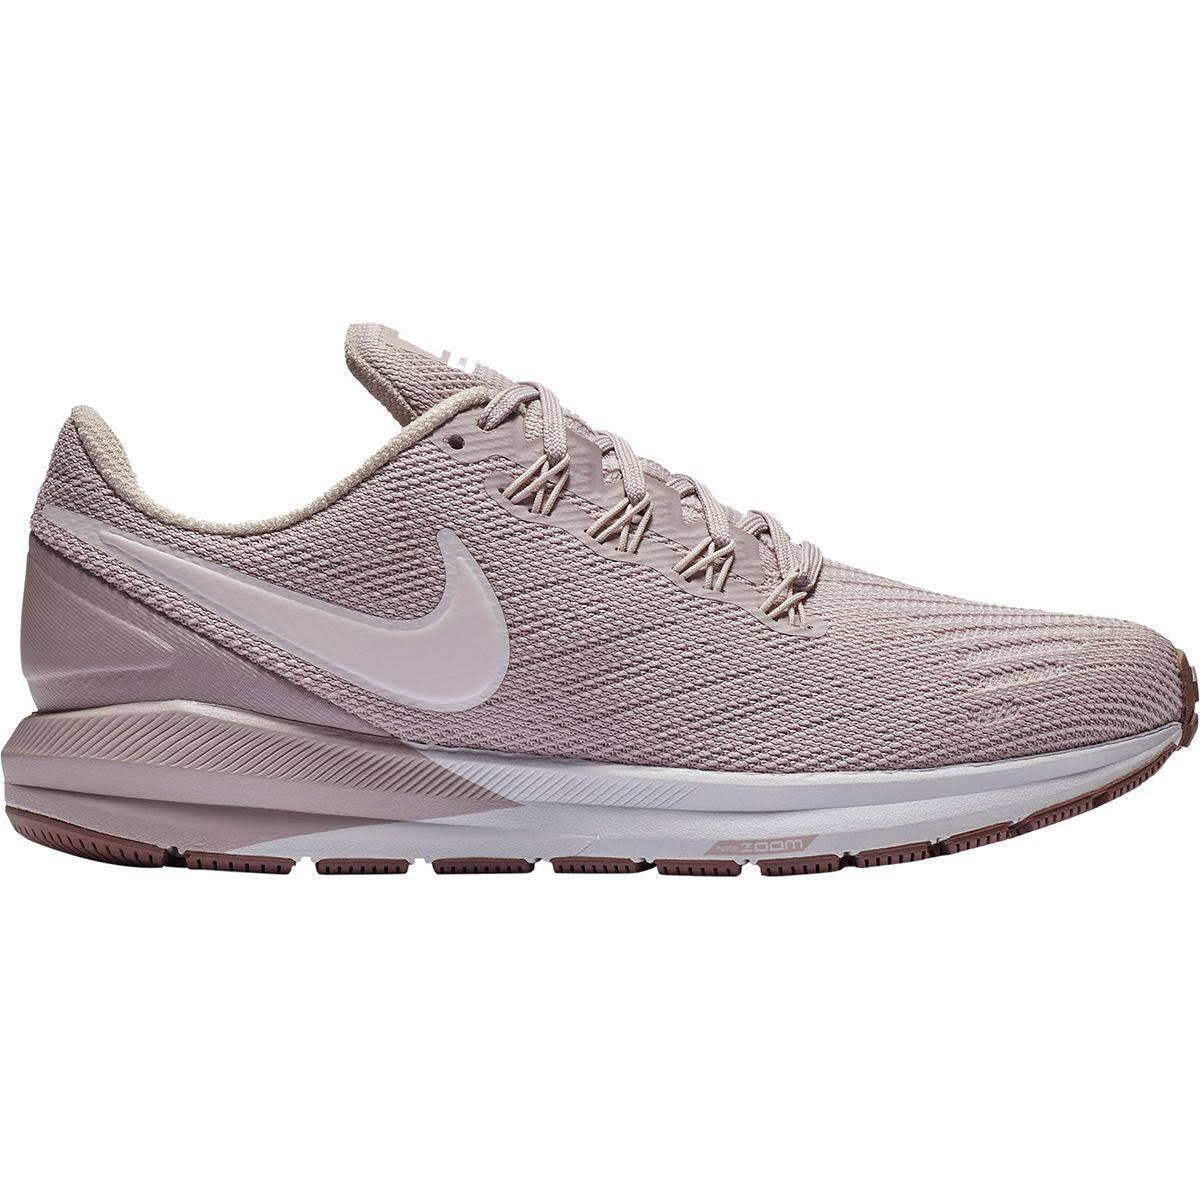 low priced 0f62a 179ff Nike Air Zoom Structure 22 Women's Running Shoe Particle Rose Pink -  AA1640-600